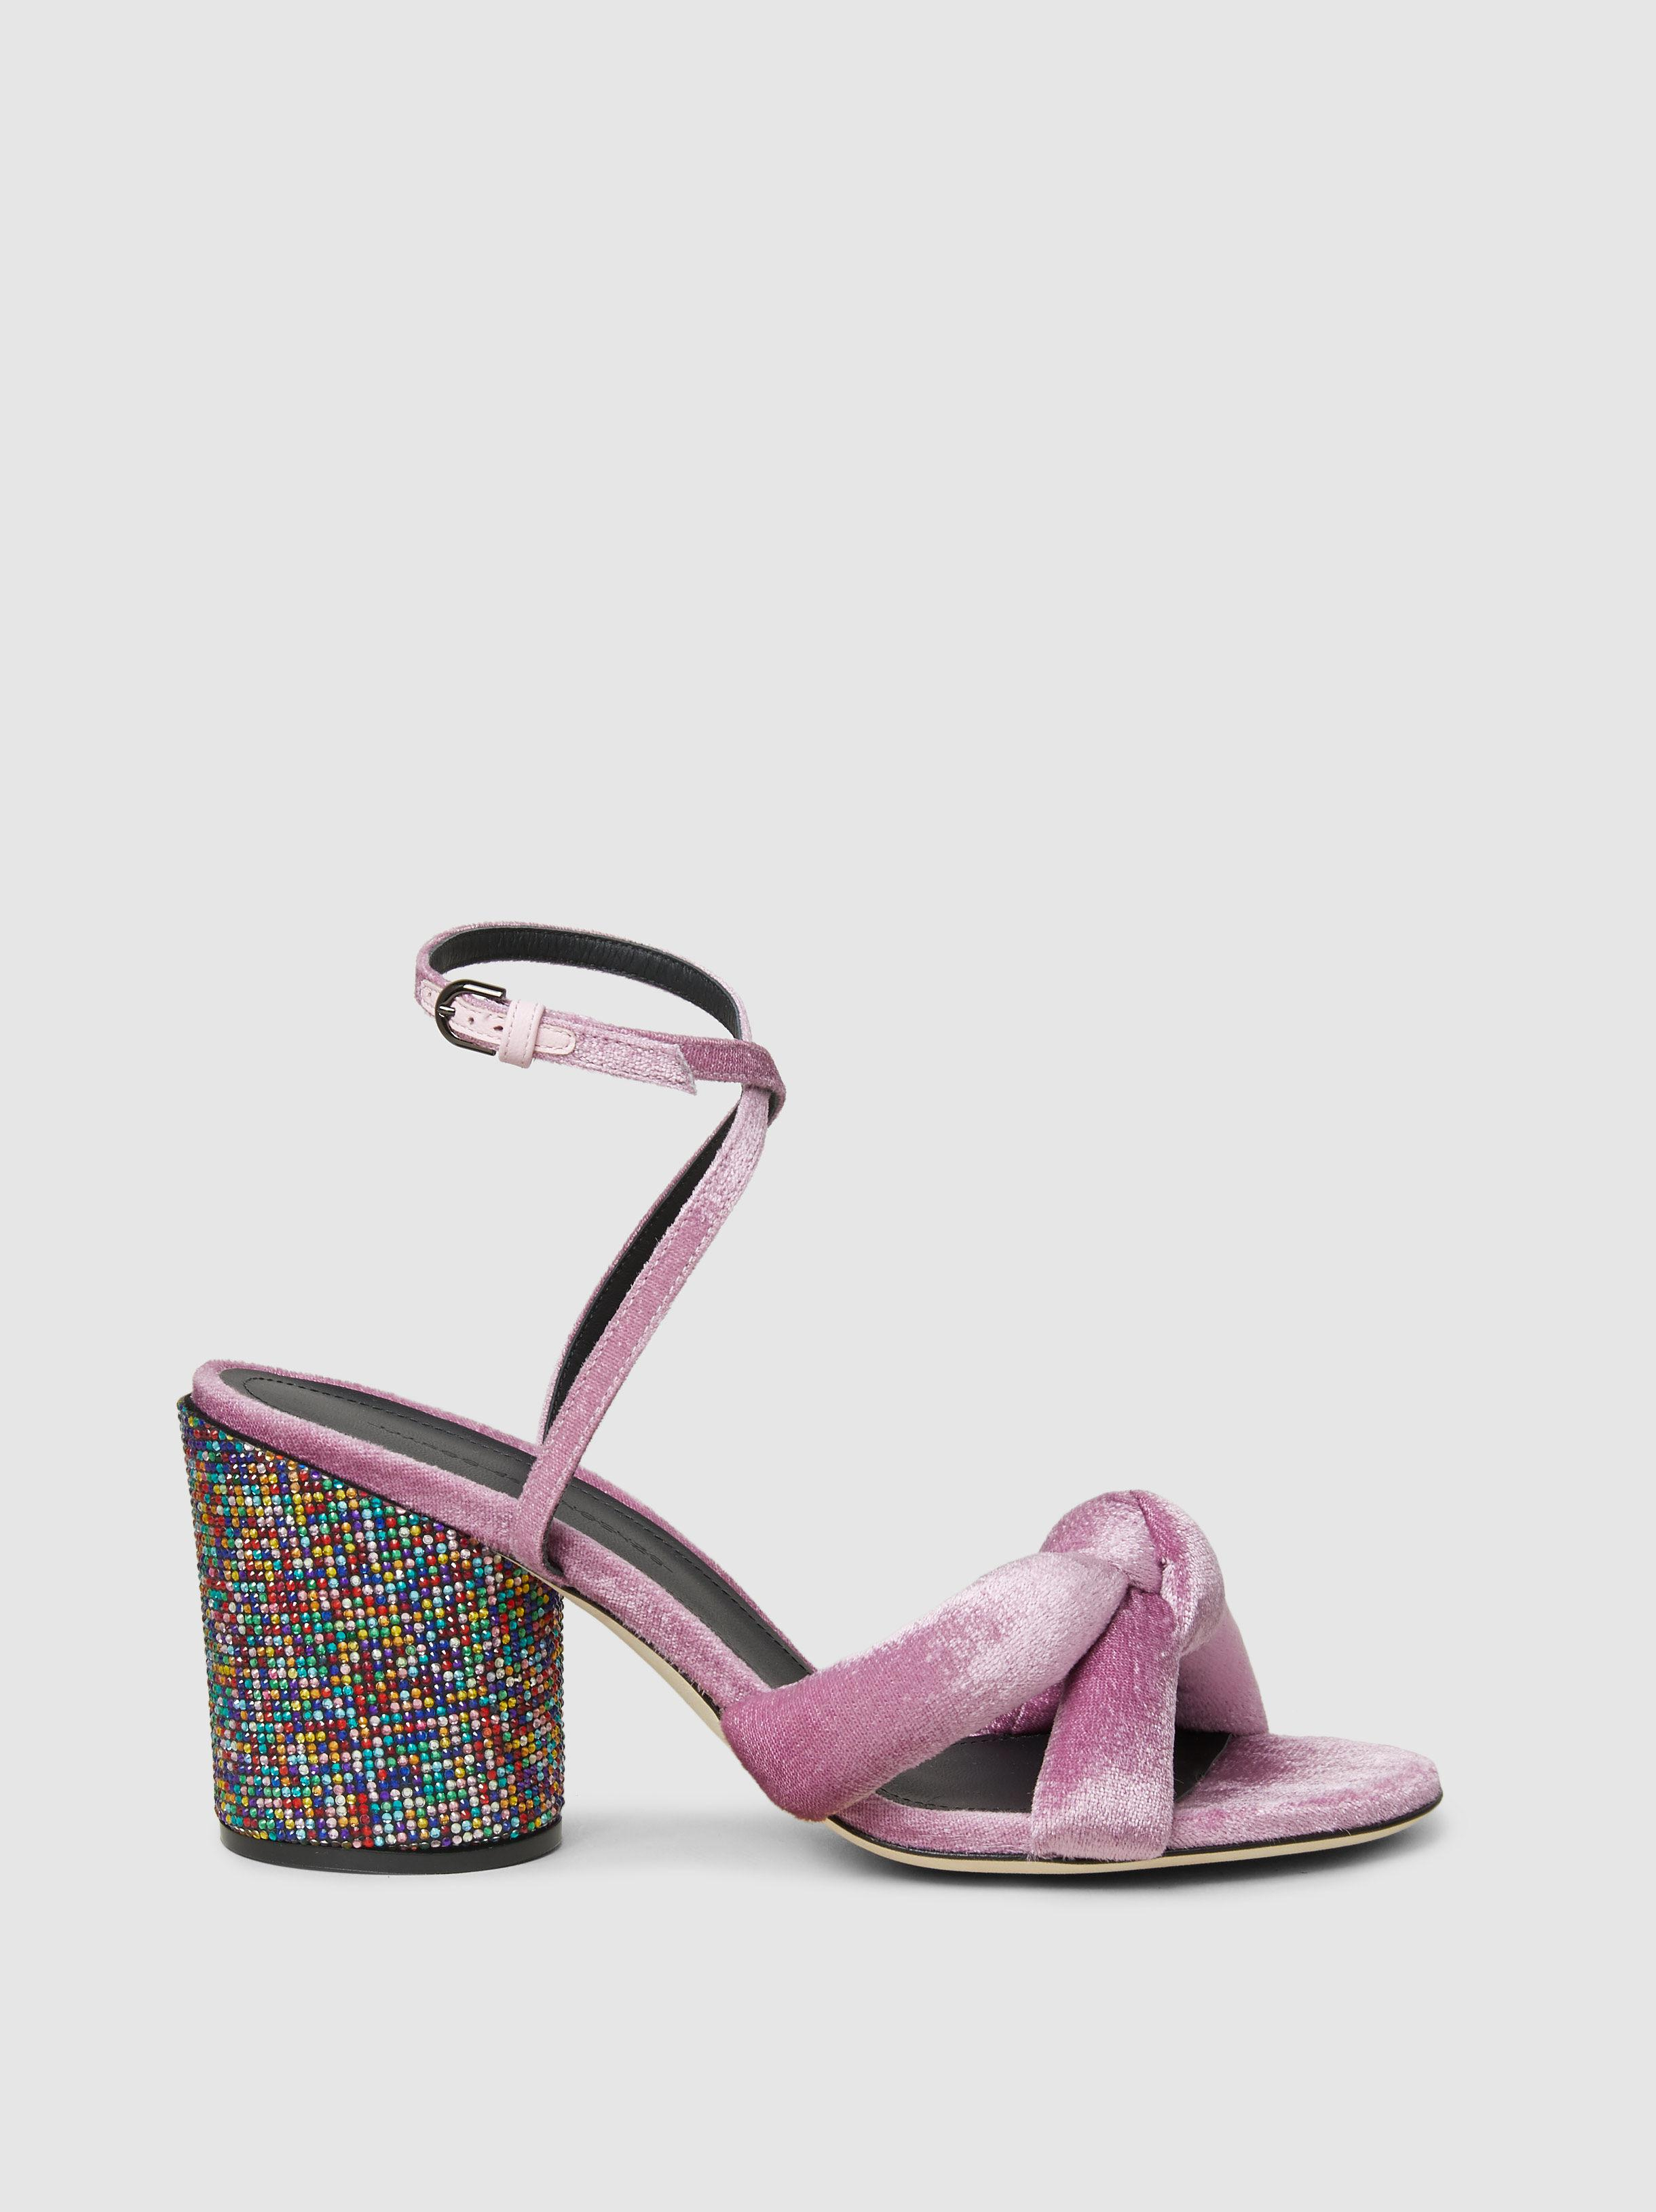 reputable site e055a be48d marco-de-vincenzo-Pink-Crystal-embellished-Knotted-Velvet-Sandals.jpeg